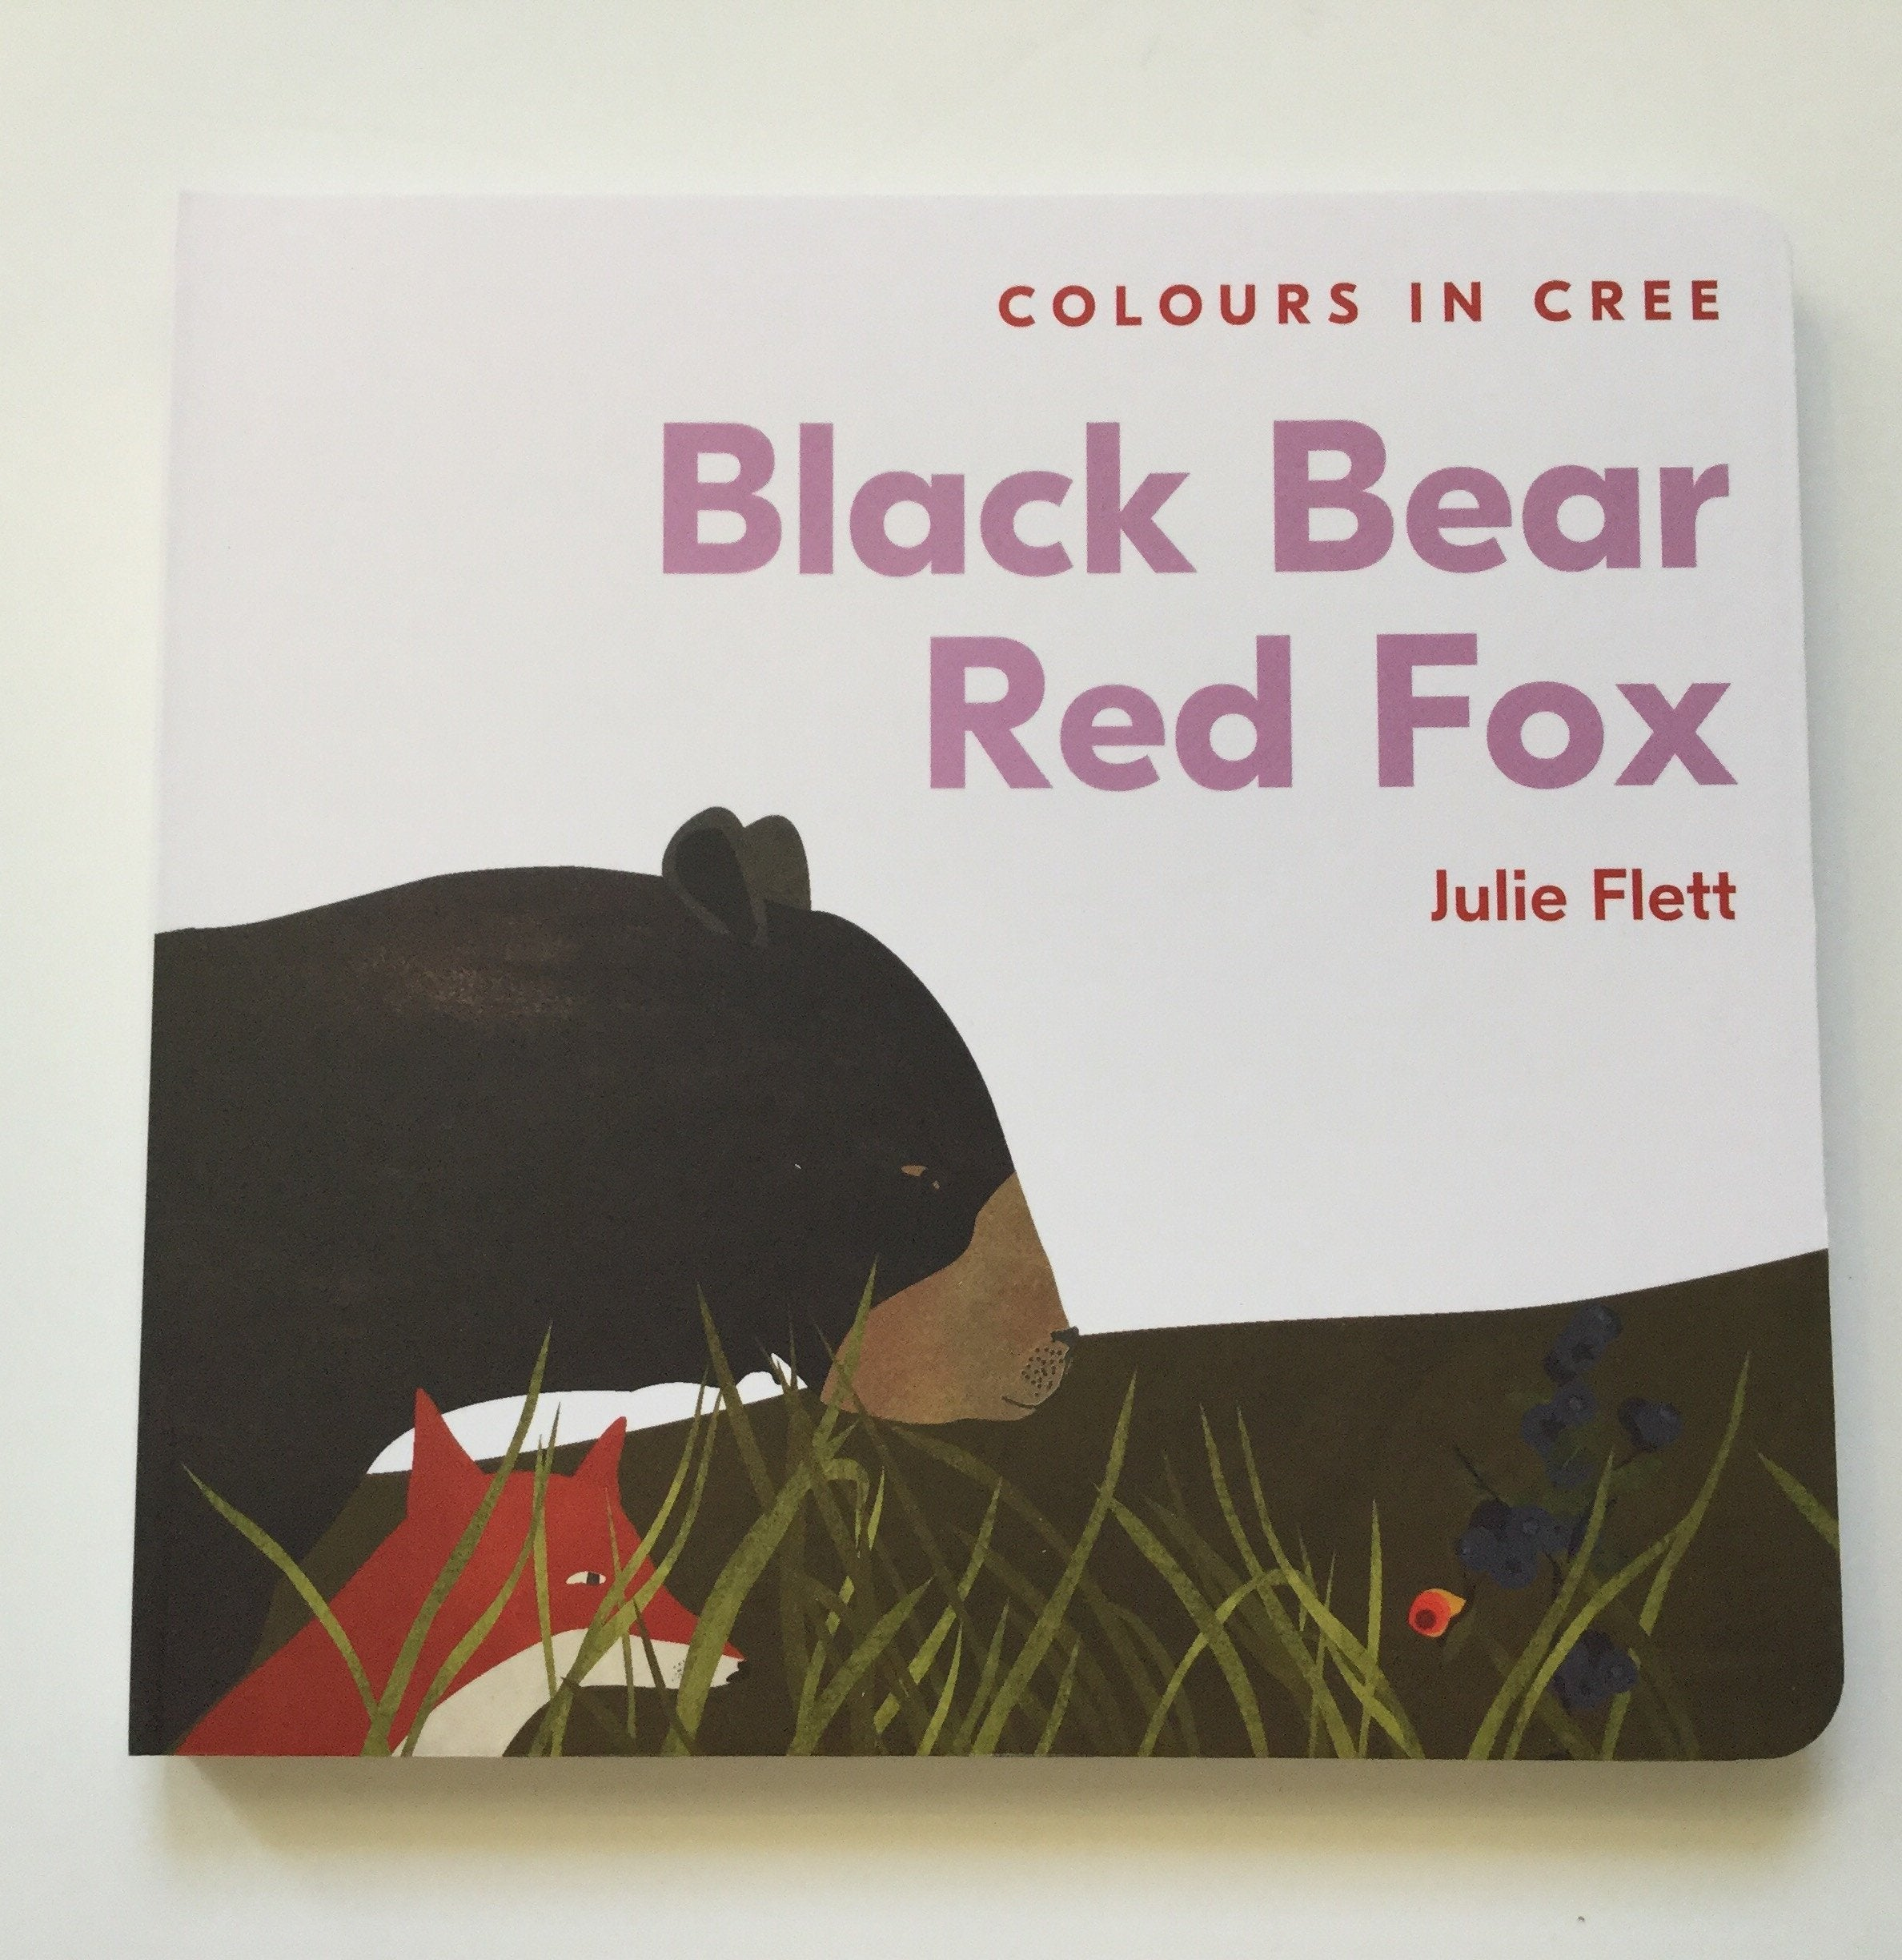 Black Bear, Red Fox: Colours in Cree by Julie Flett